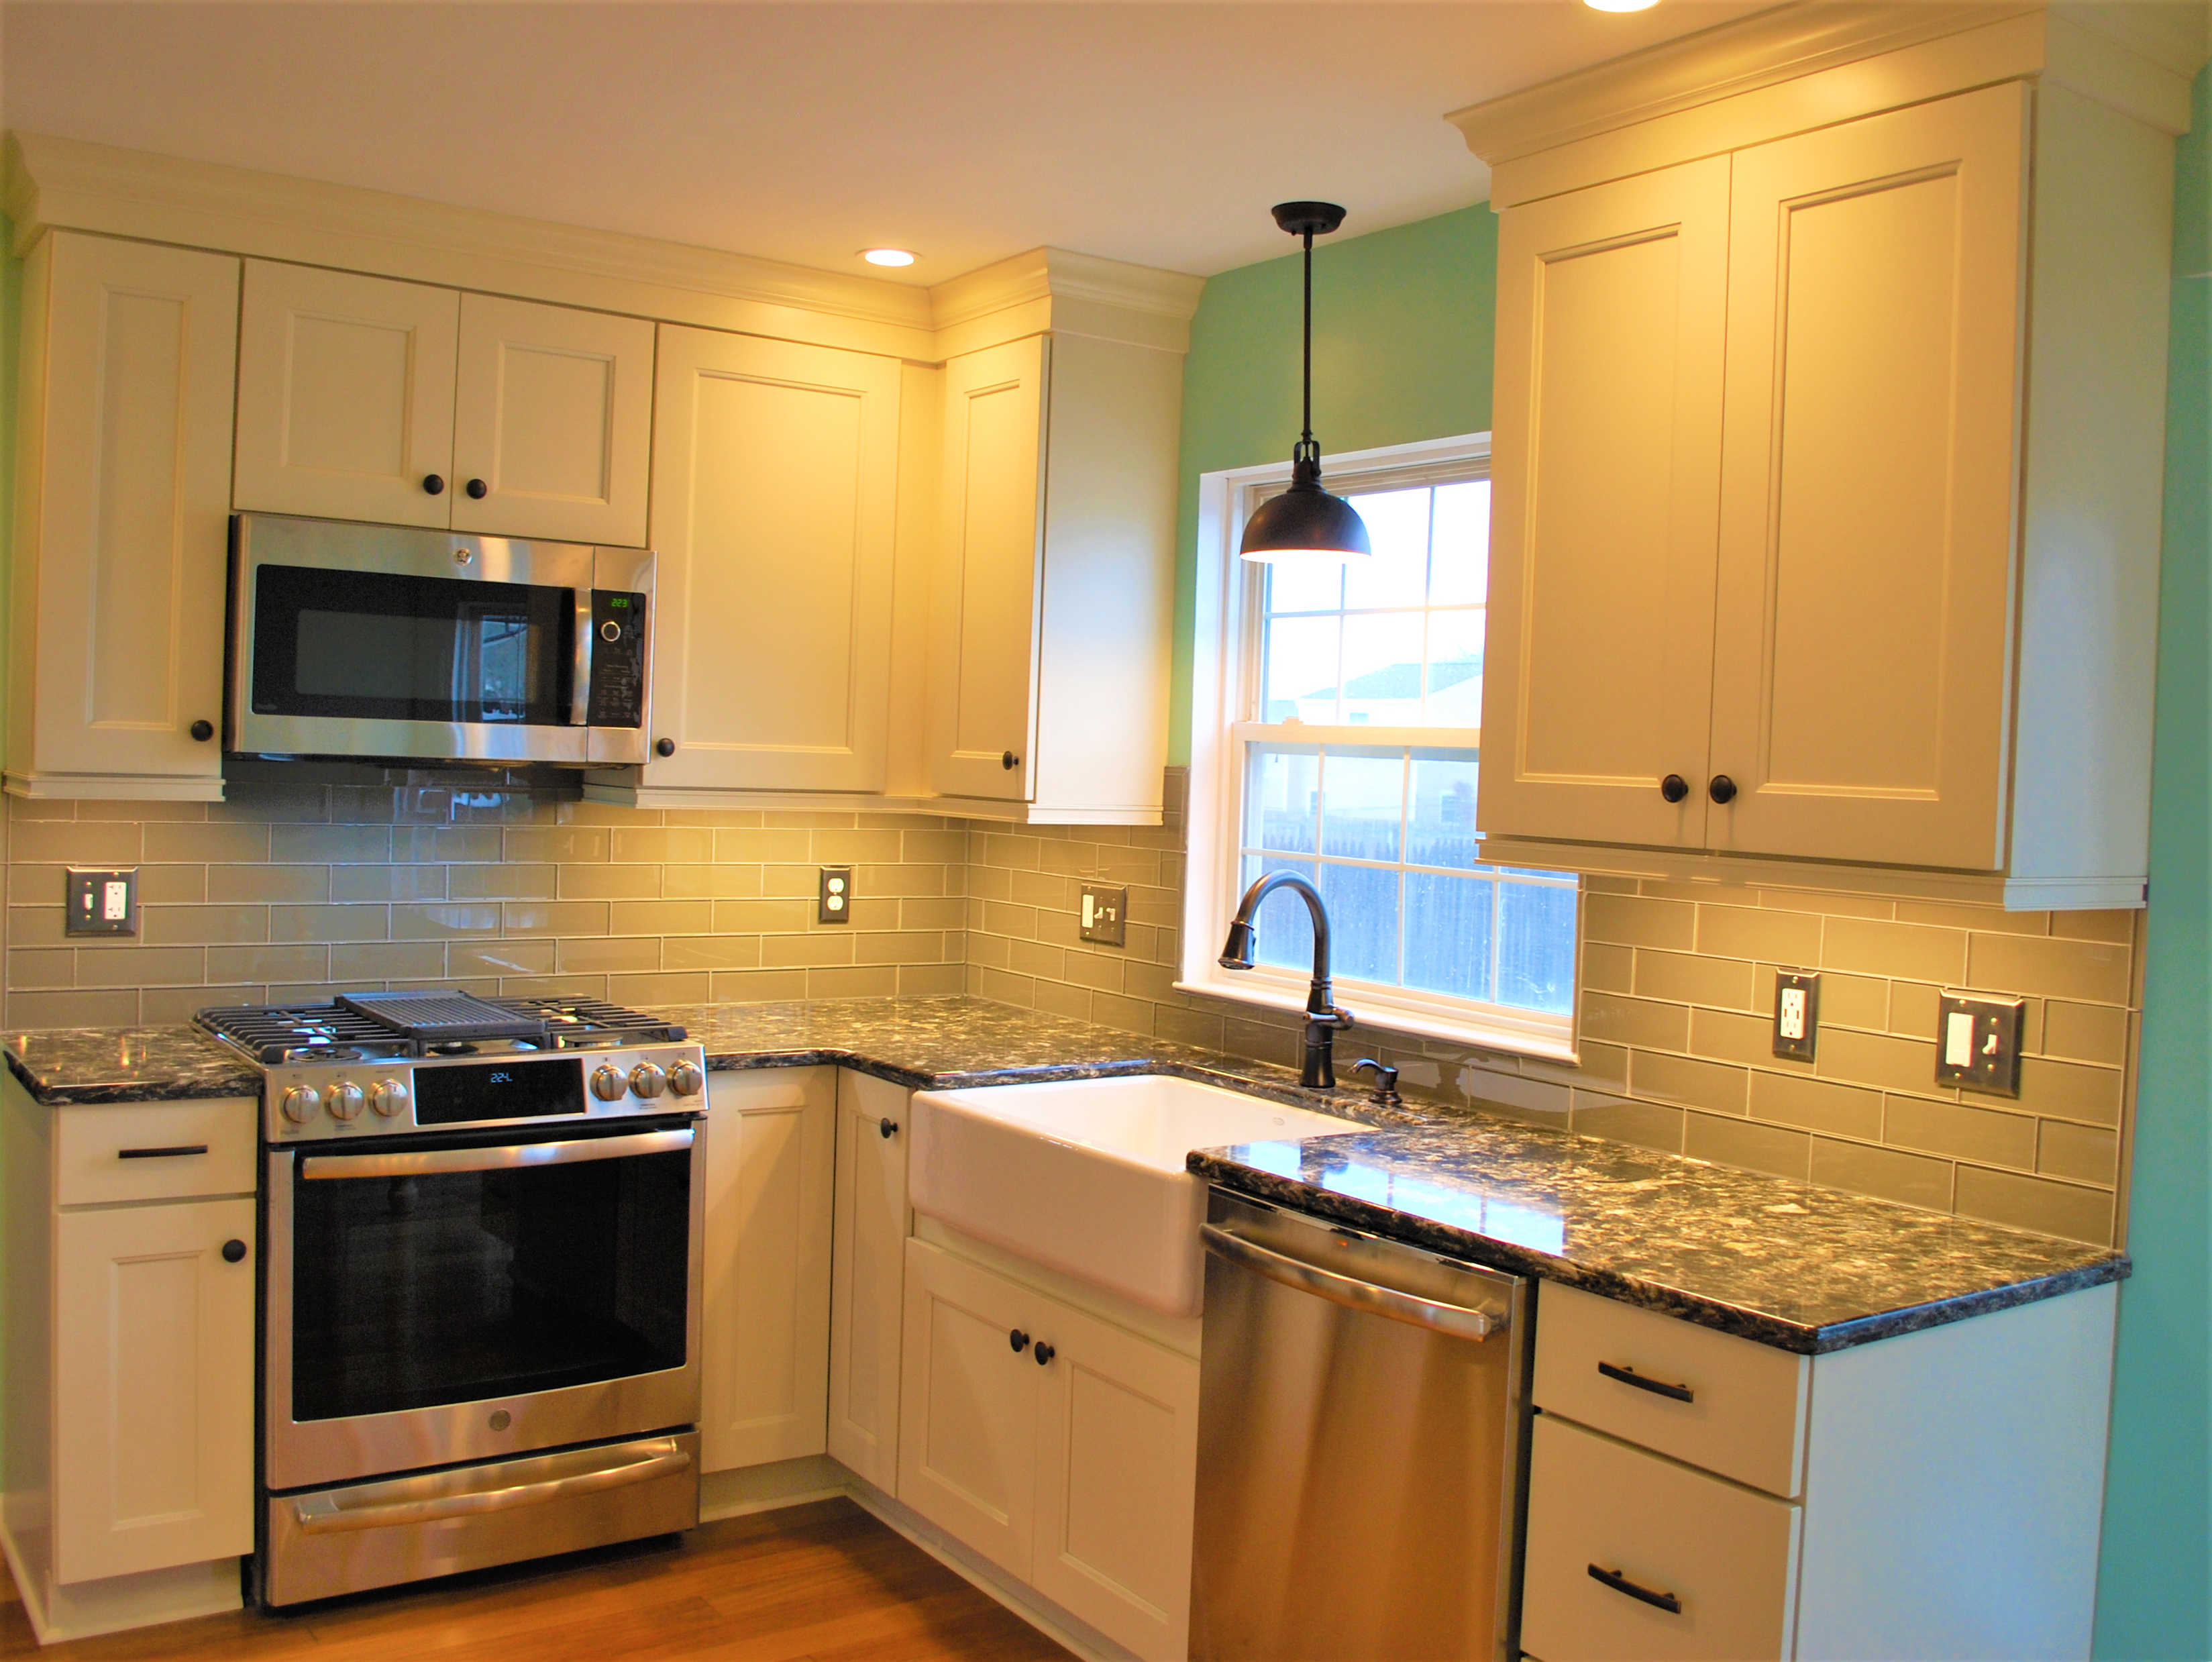 kitchen renovation near syracuse ny marinich builders